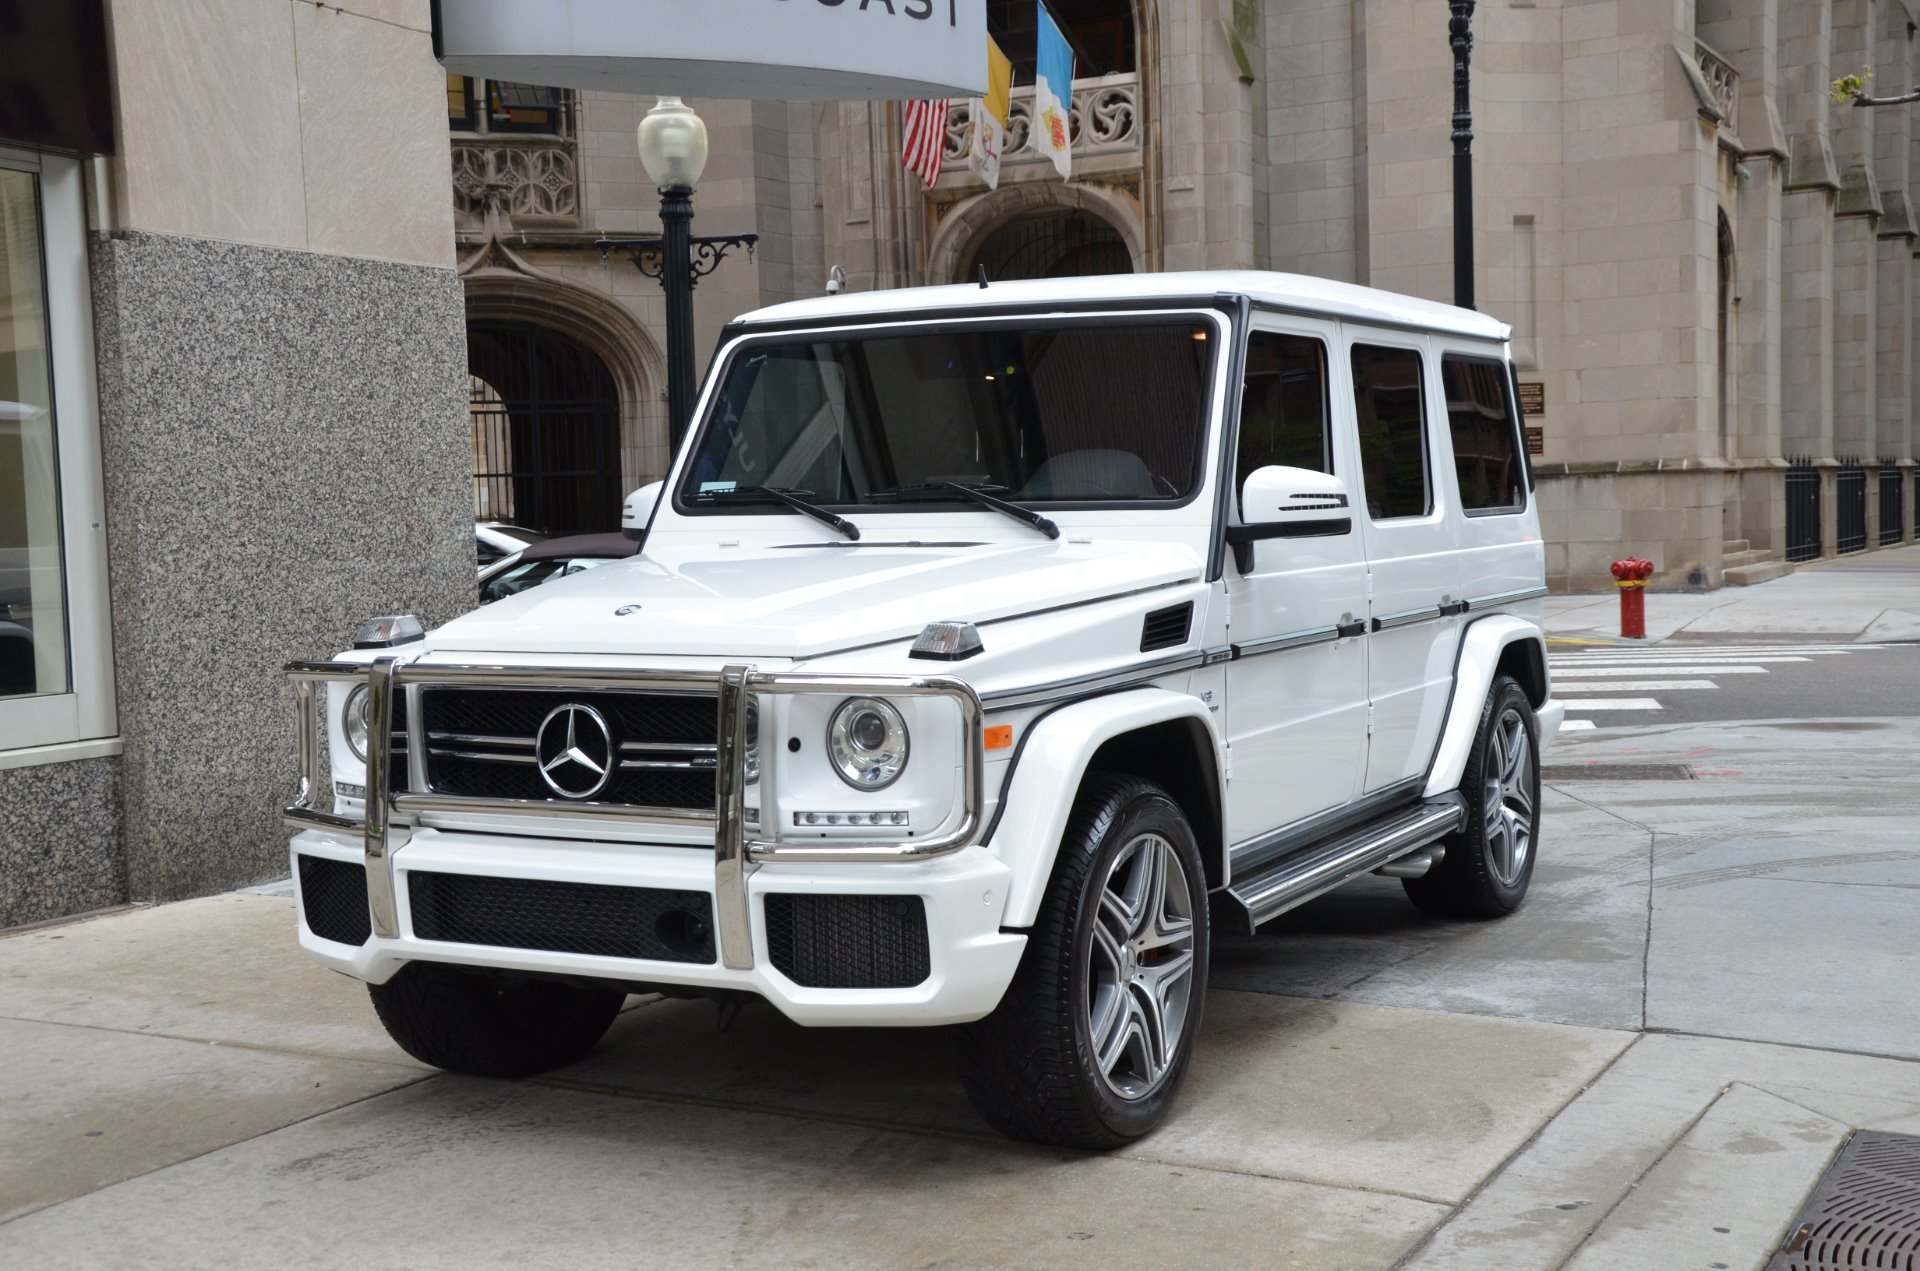 2015 mercedes benz g class g63 amg used bentley used for Used g class mercedes benz